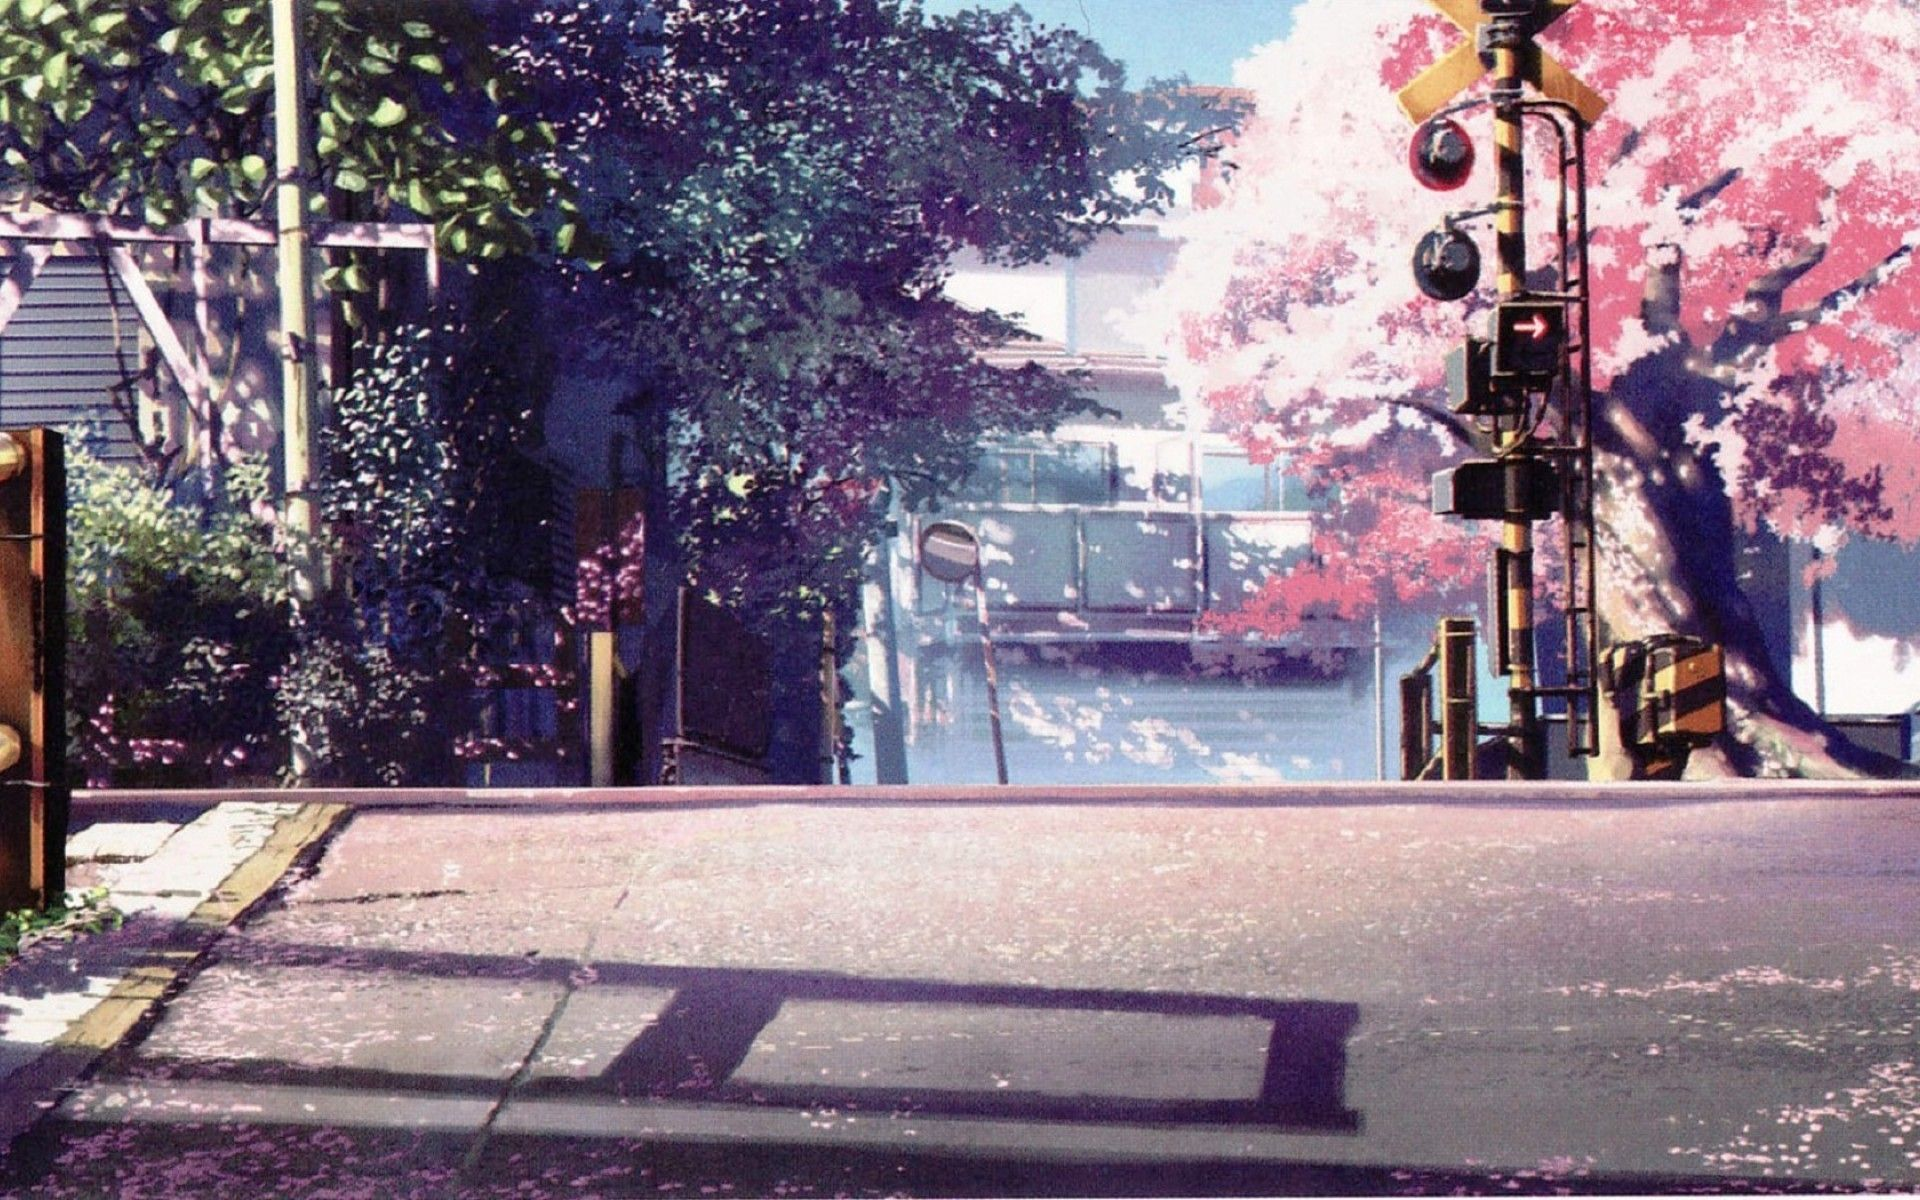 Anime 1920x1200 anime 5 centimeters per second